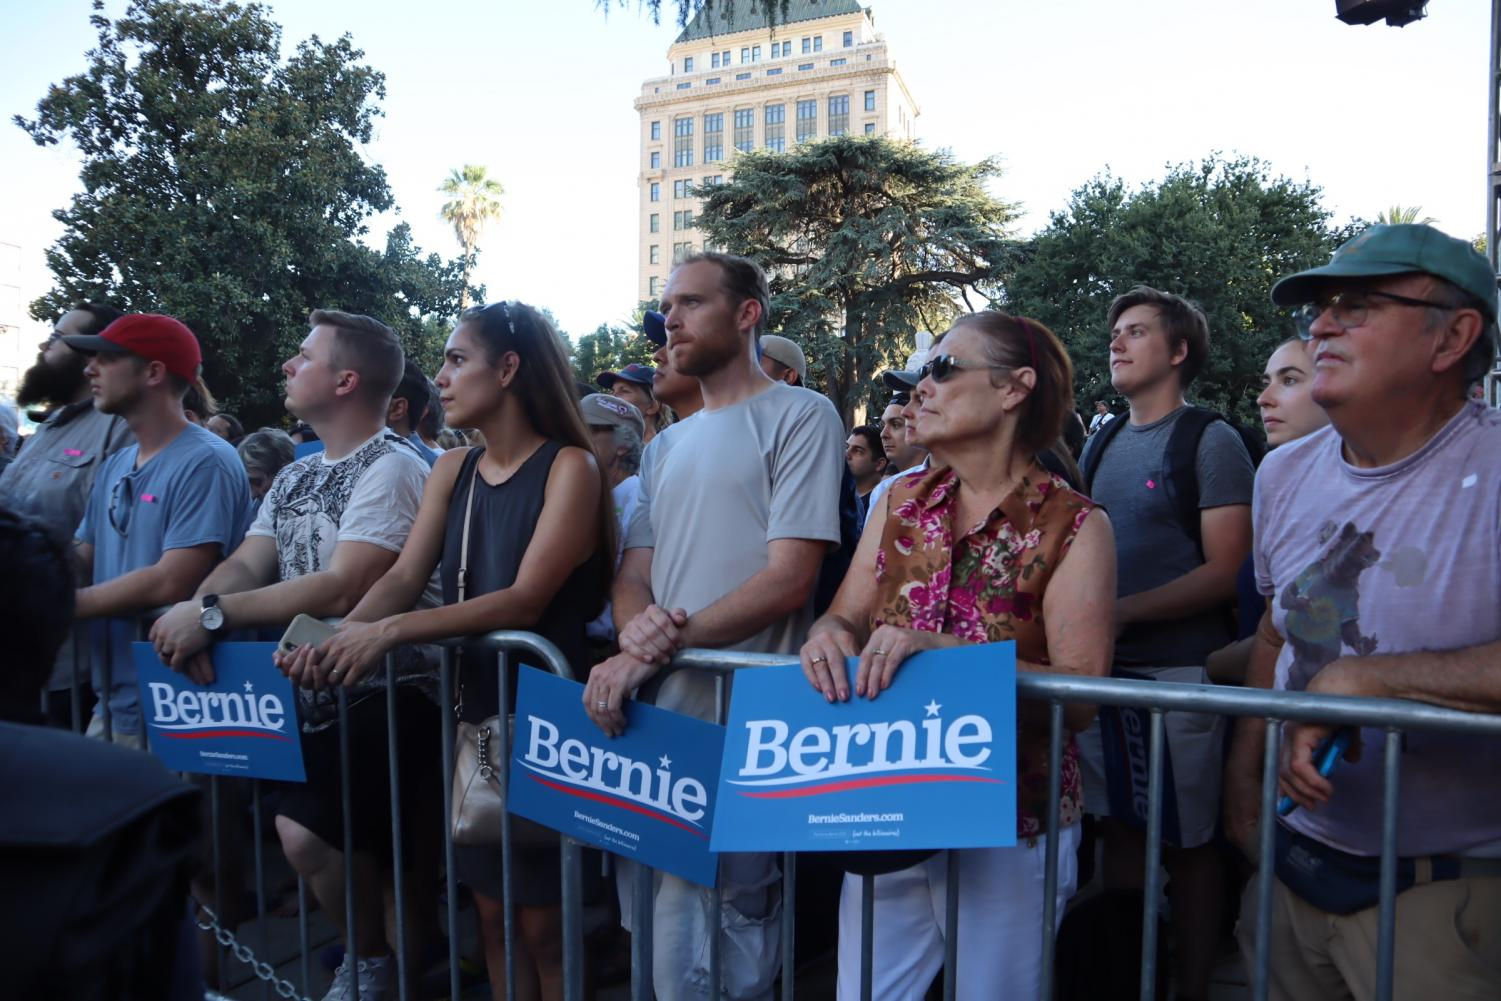 Onlookers+listen+to+the+speakers+at+Bernie%27s+Sanders+Cesar+Chavez+Plaza+campaign+rally+on+Thursday%2C+Aug.+22%2C+2019.+Topics+ranged+from+unionization%2C+criminal+justice+reform%2C+climate+change+and+student+loans.